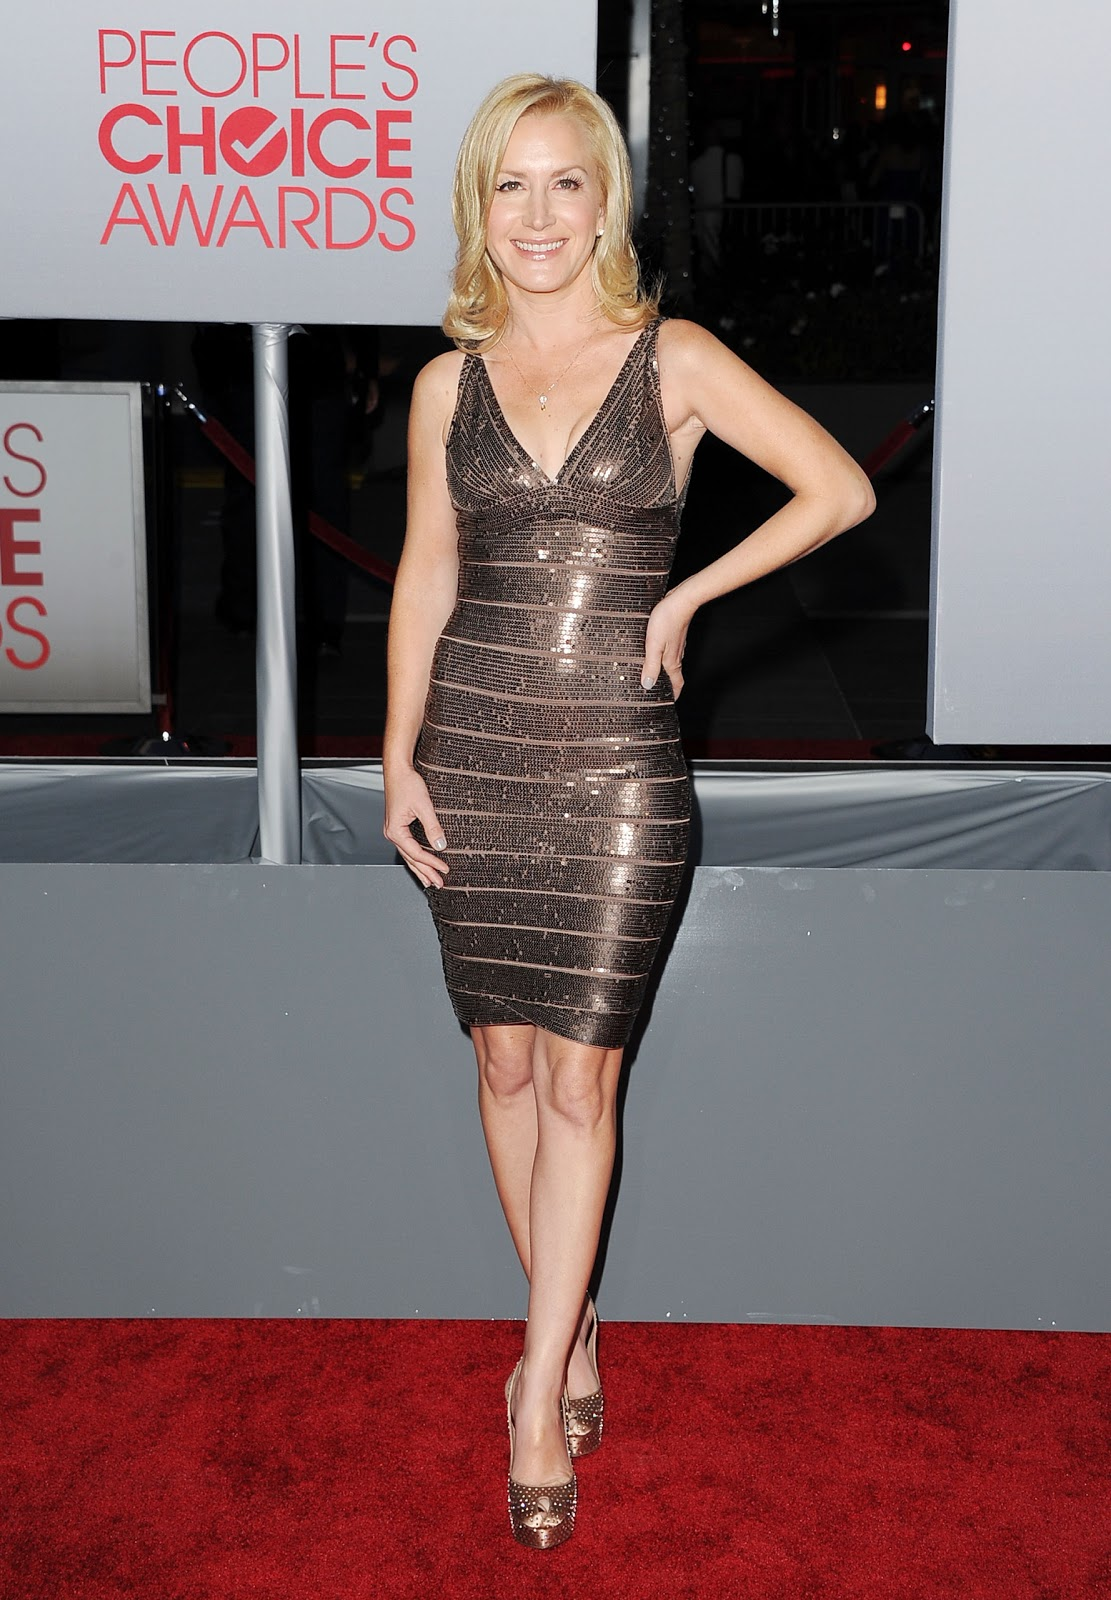 Angela Kinsey Nude Photos herve leger sightings: angela kinsey at the 2012 peoples